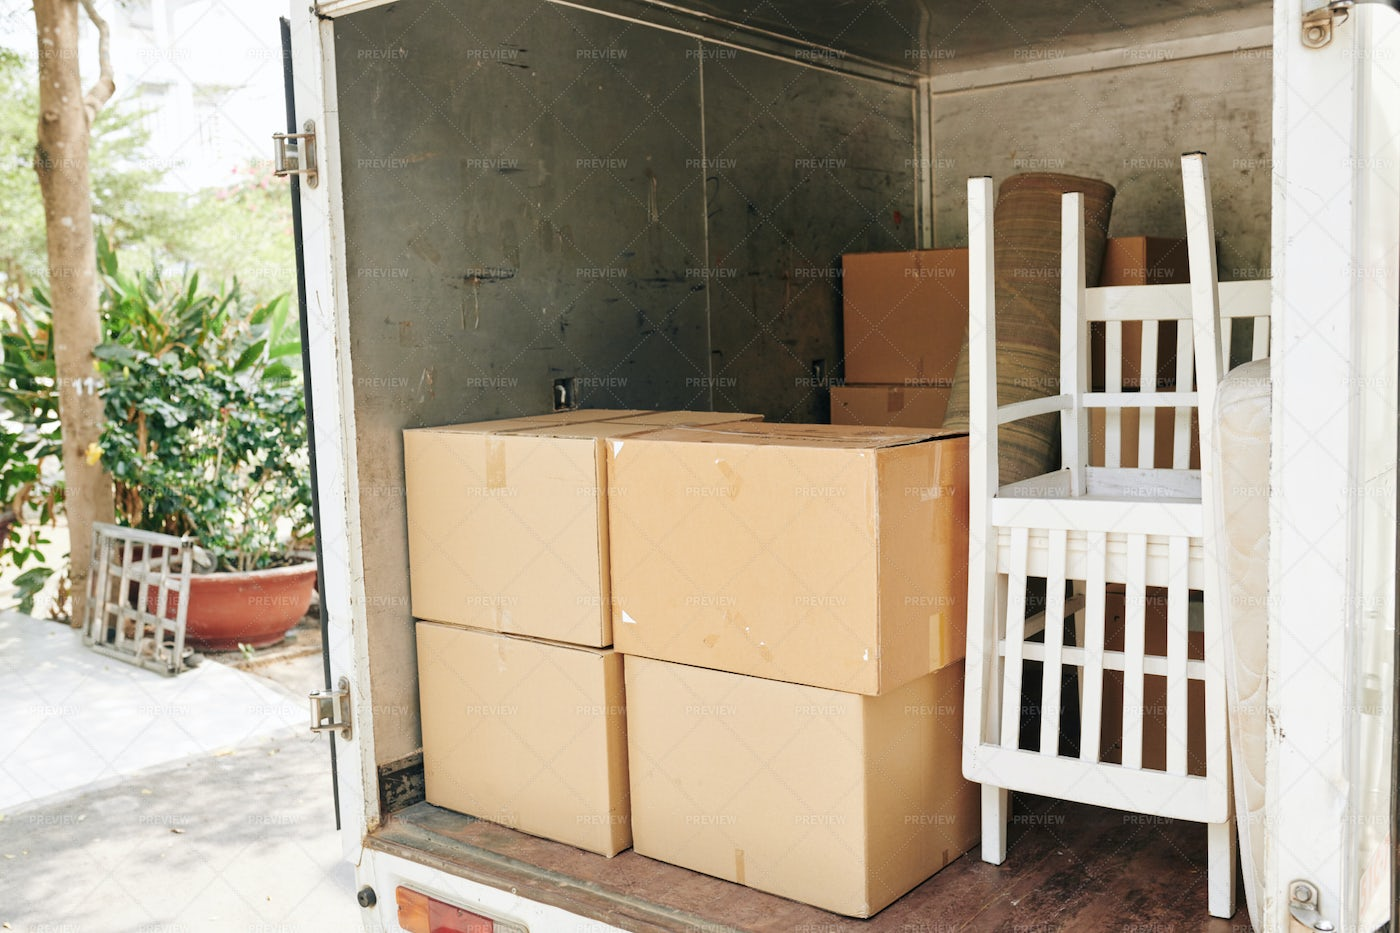 Truck Loaded With Furniture: Stock Photos